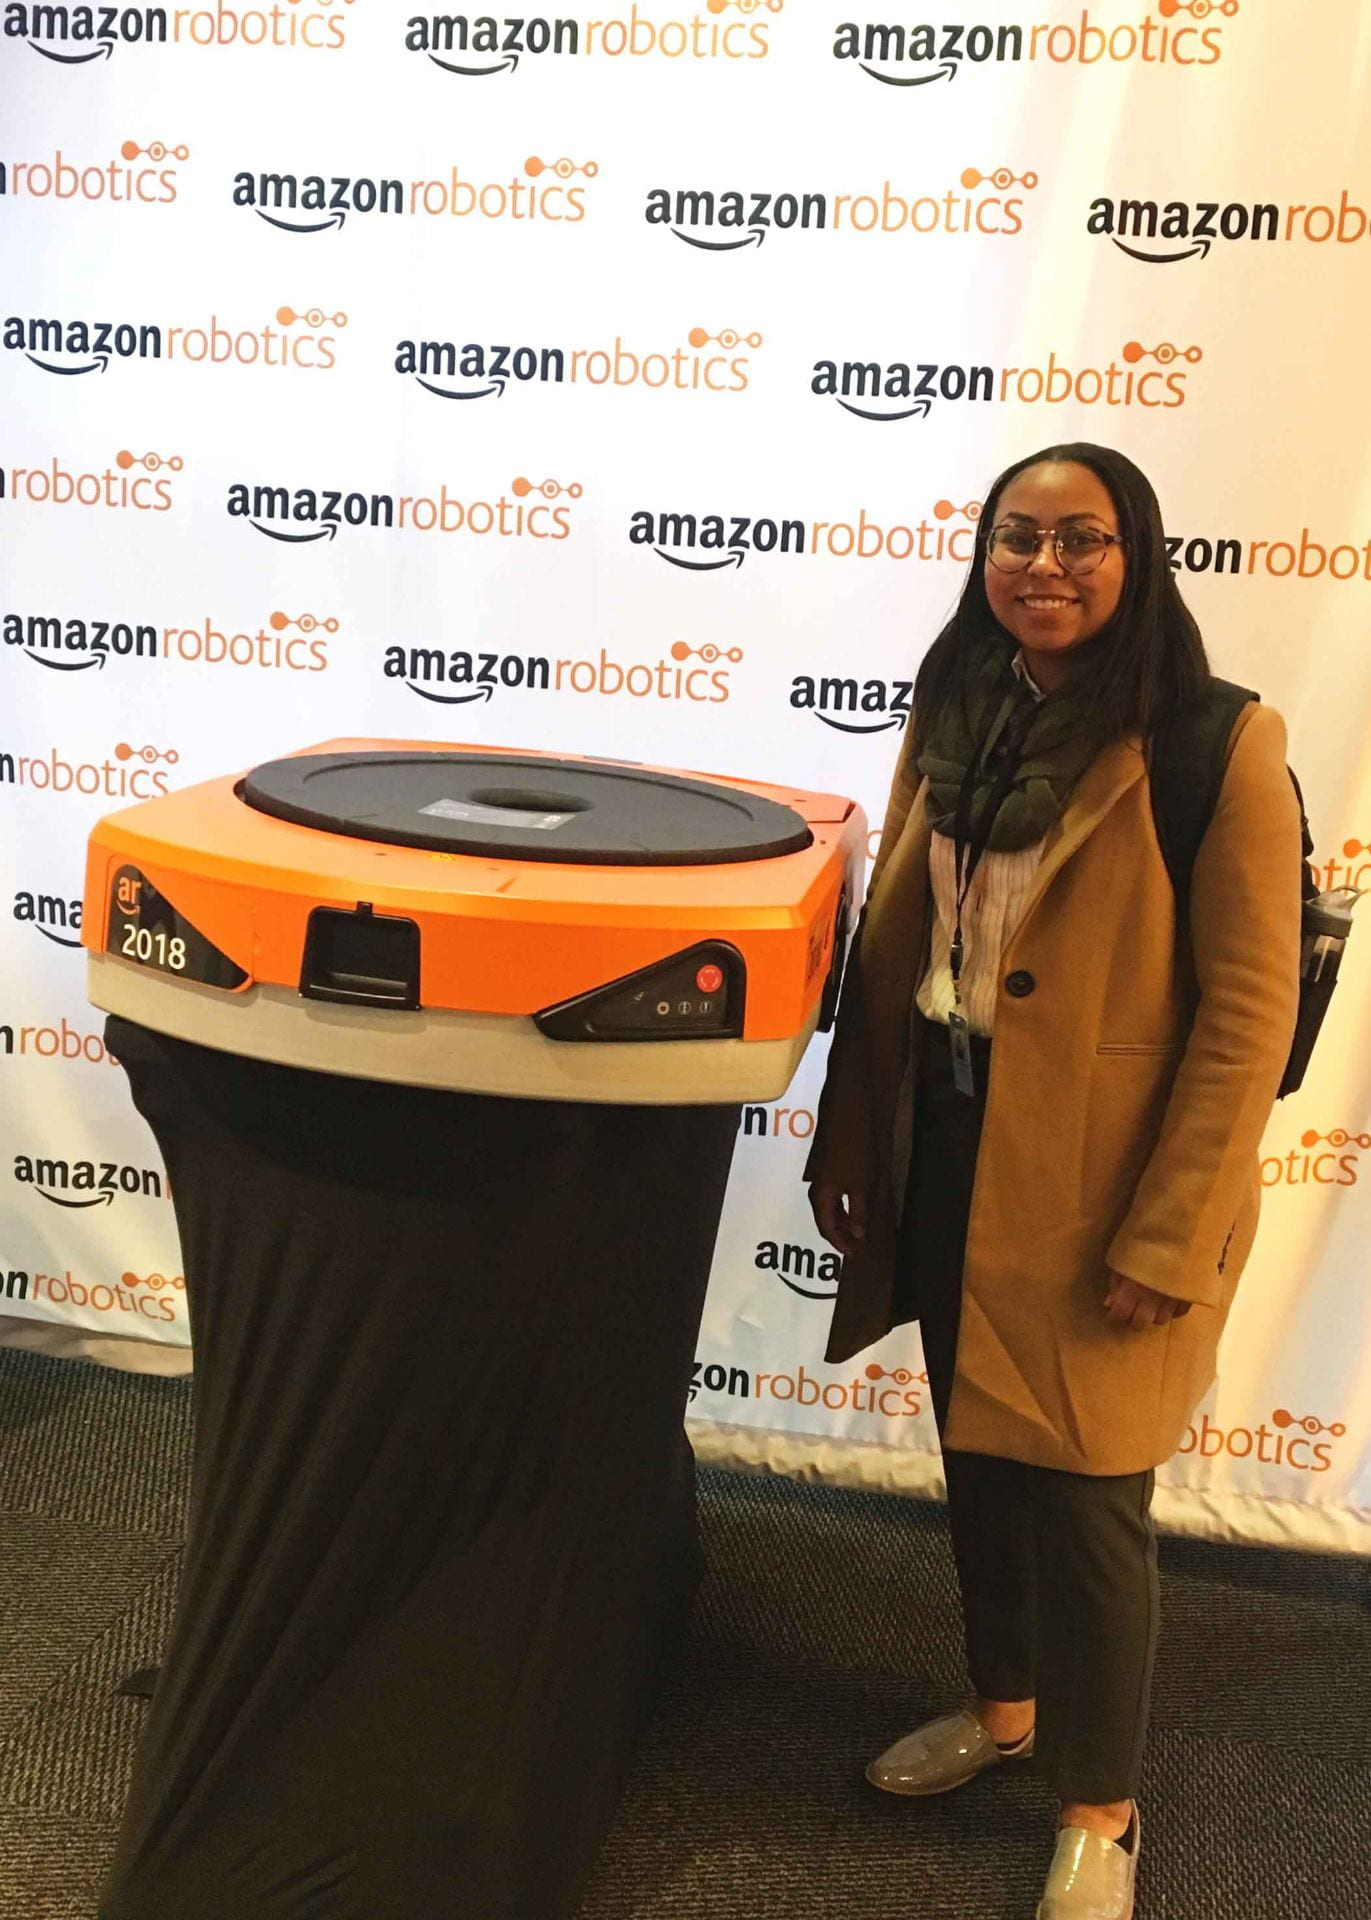 Jasmine at Amazon Robotics